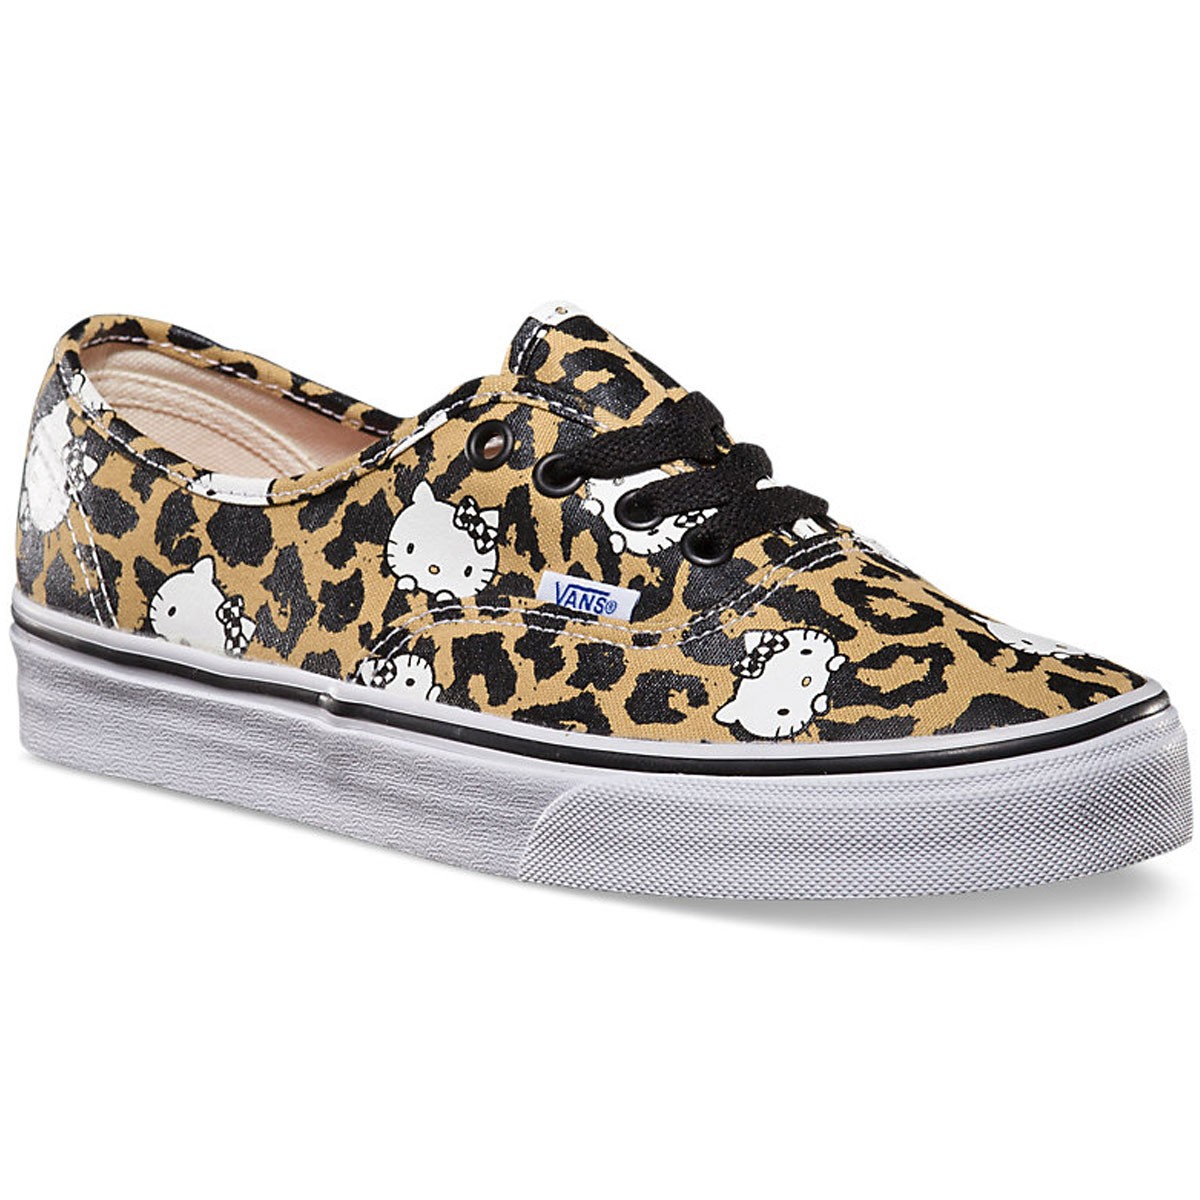 0ddc195a709f Vans Hello Kitty Authentic Shoes - Leopard True White - 7.5